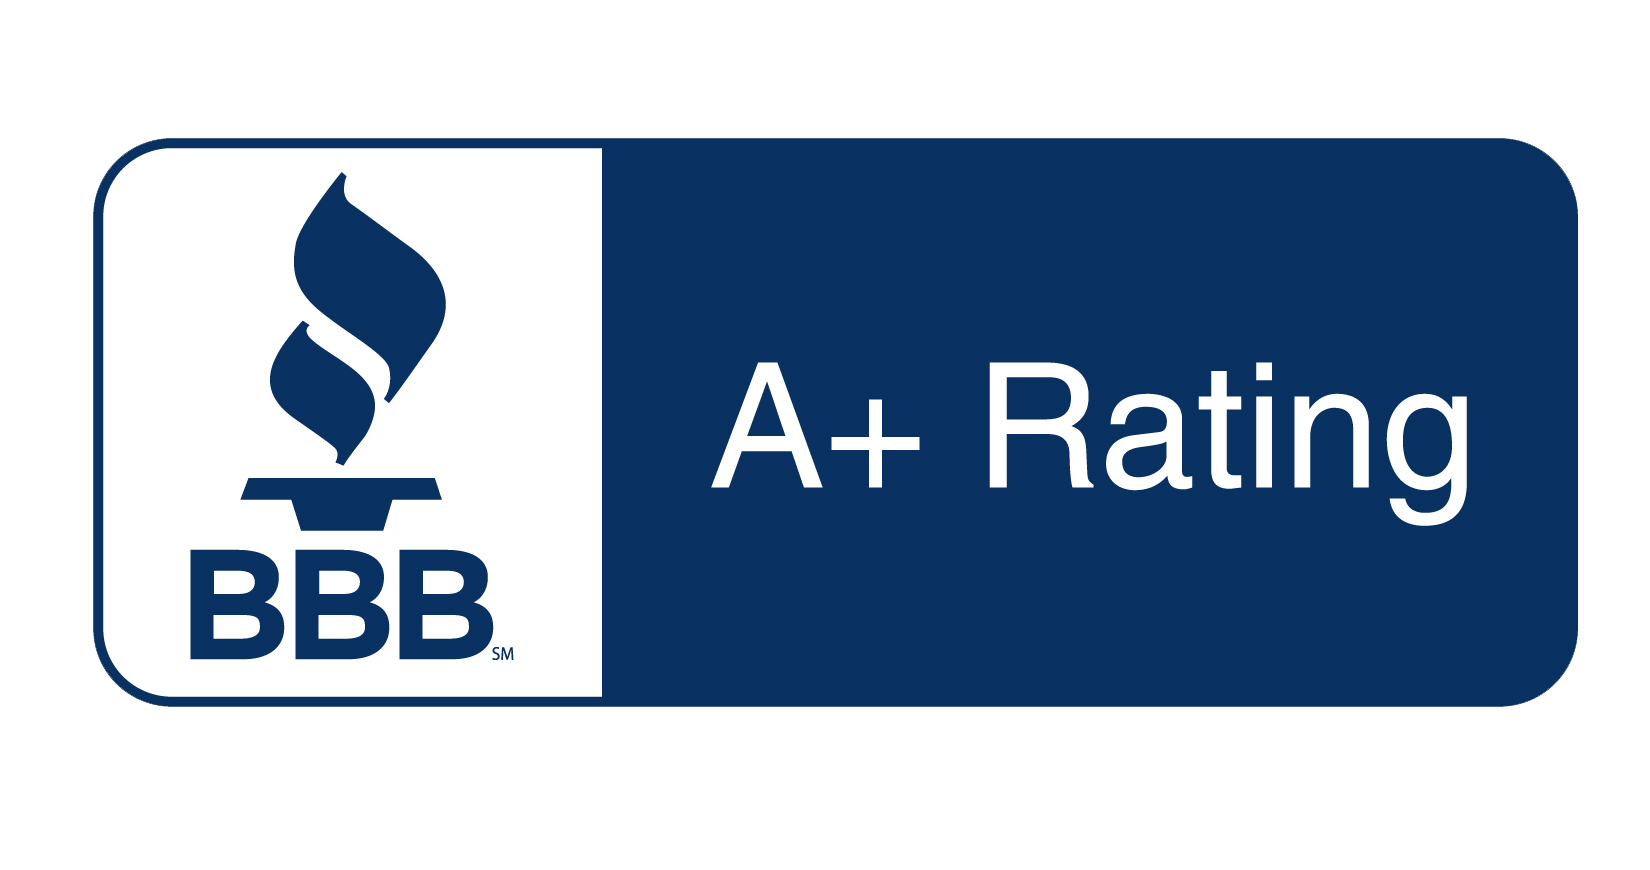 Better Business Bureau with A+ Rating